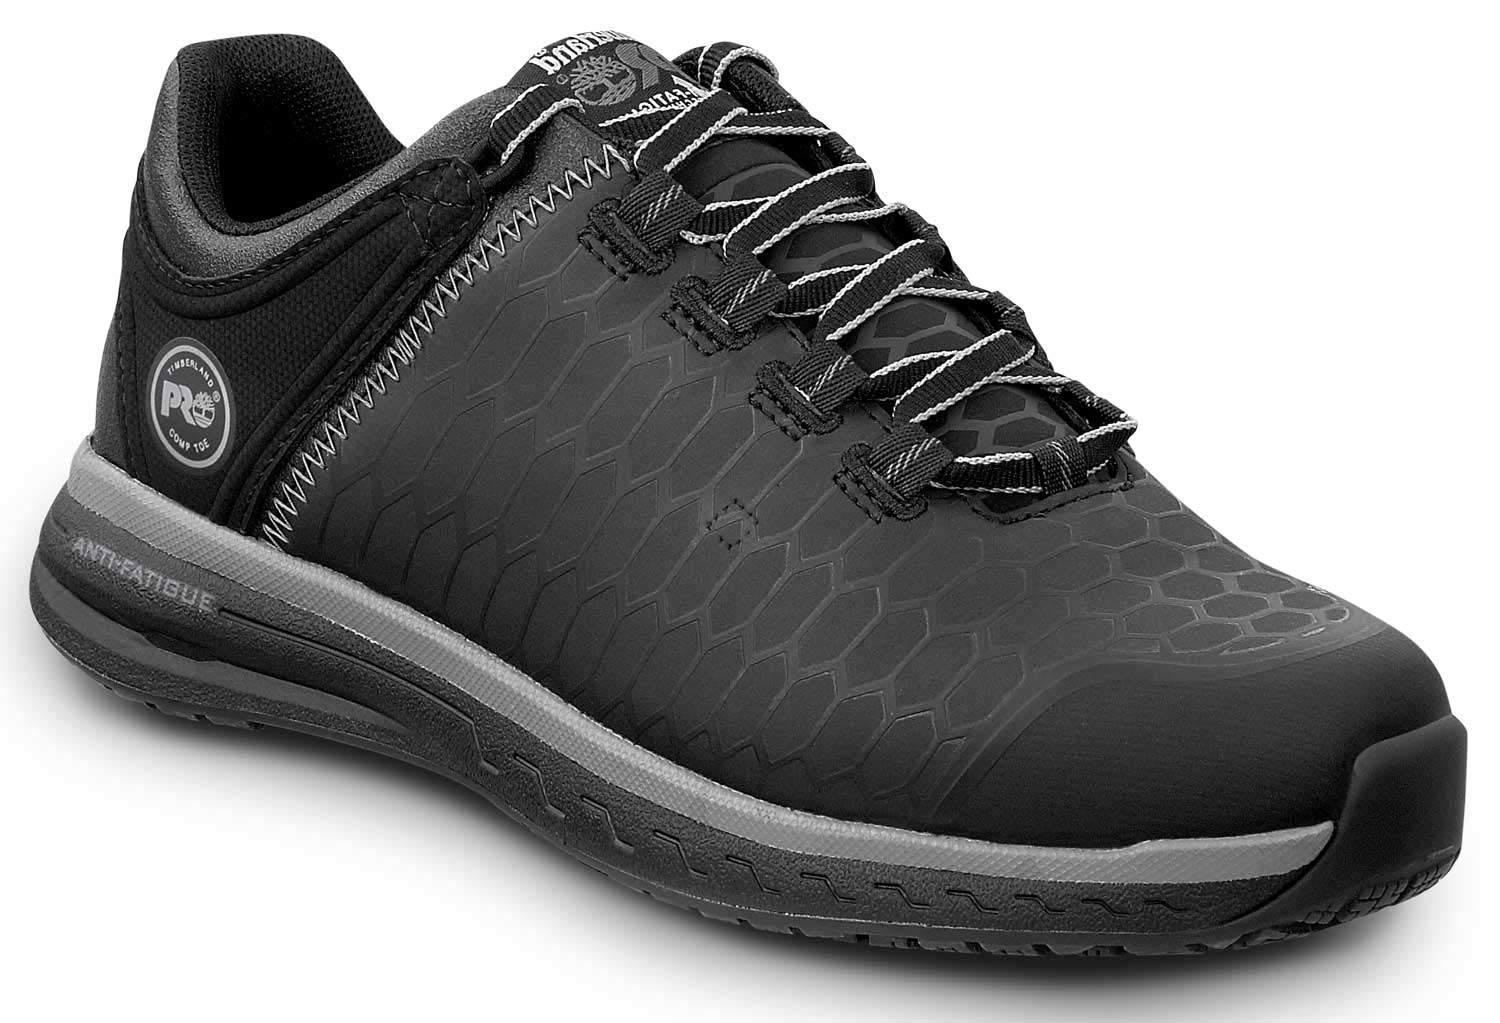 Timberland PRO Women's Powerdrive Soft Toe EH Low Athletic (7.5 M, Black/Grey) by Timberland PRO